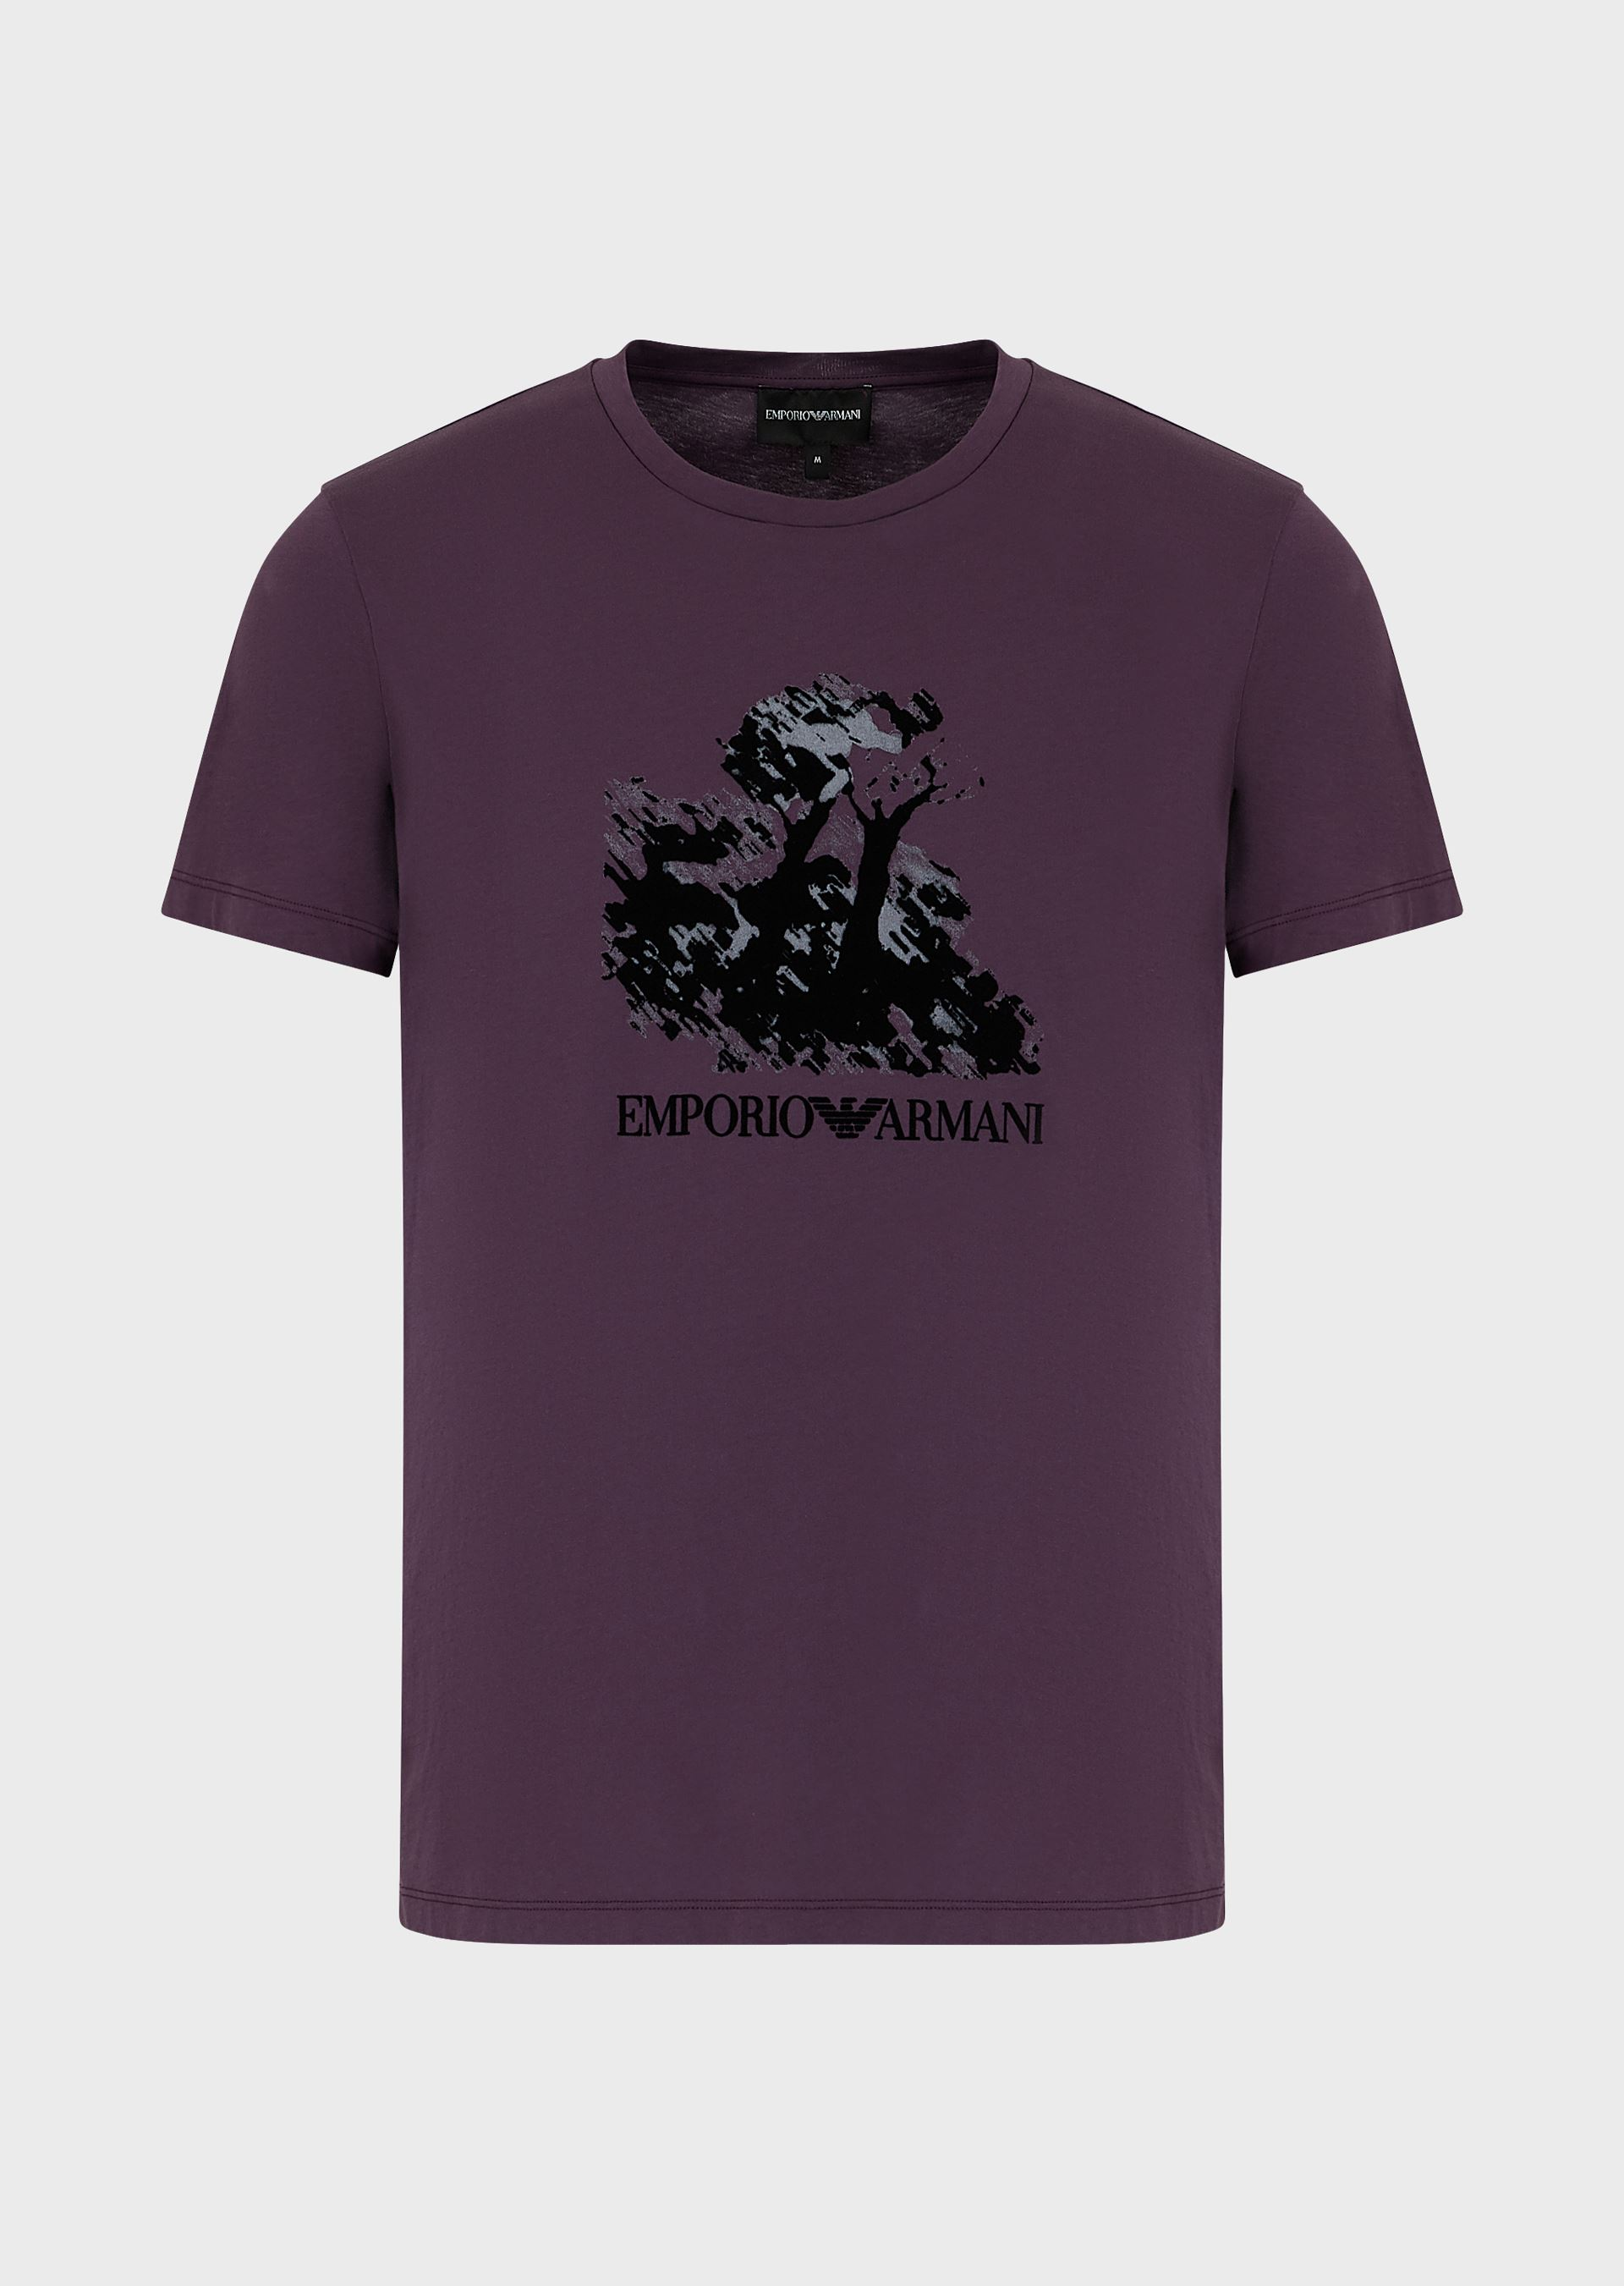 EMPORIO ARMANI Painting print light jersey T-shirt with flocking and logo